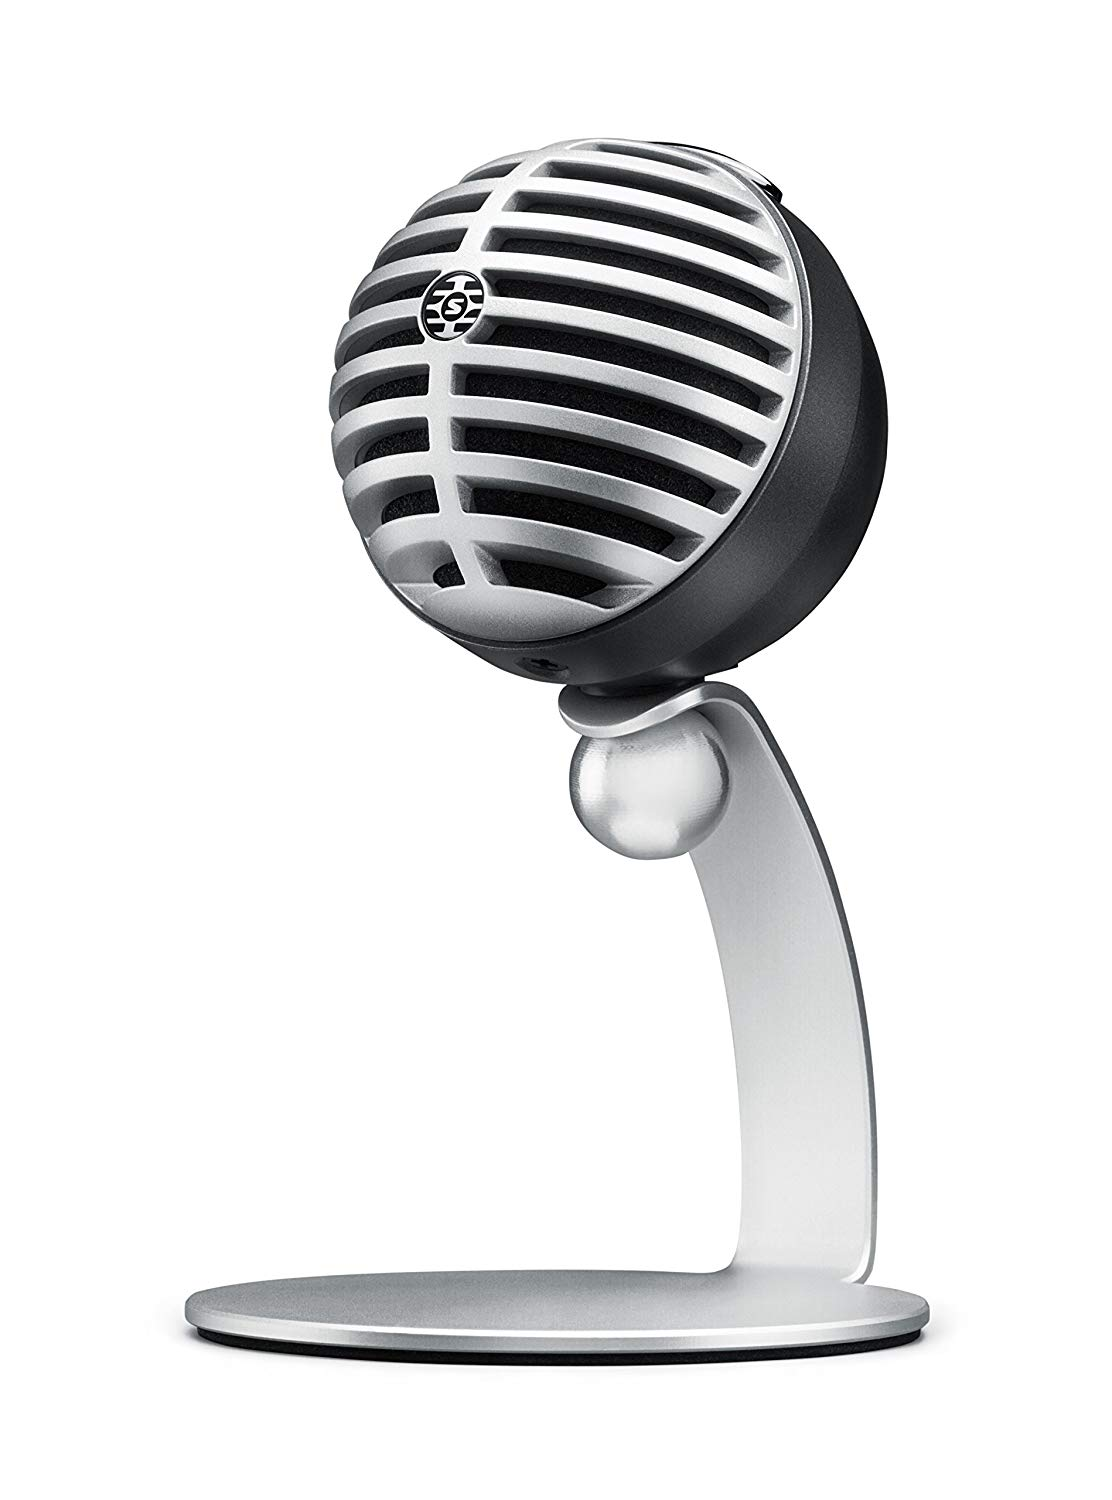 The Shure MV5 Digital Condenser Mic on Display